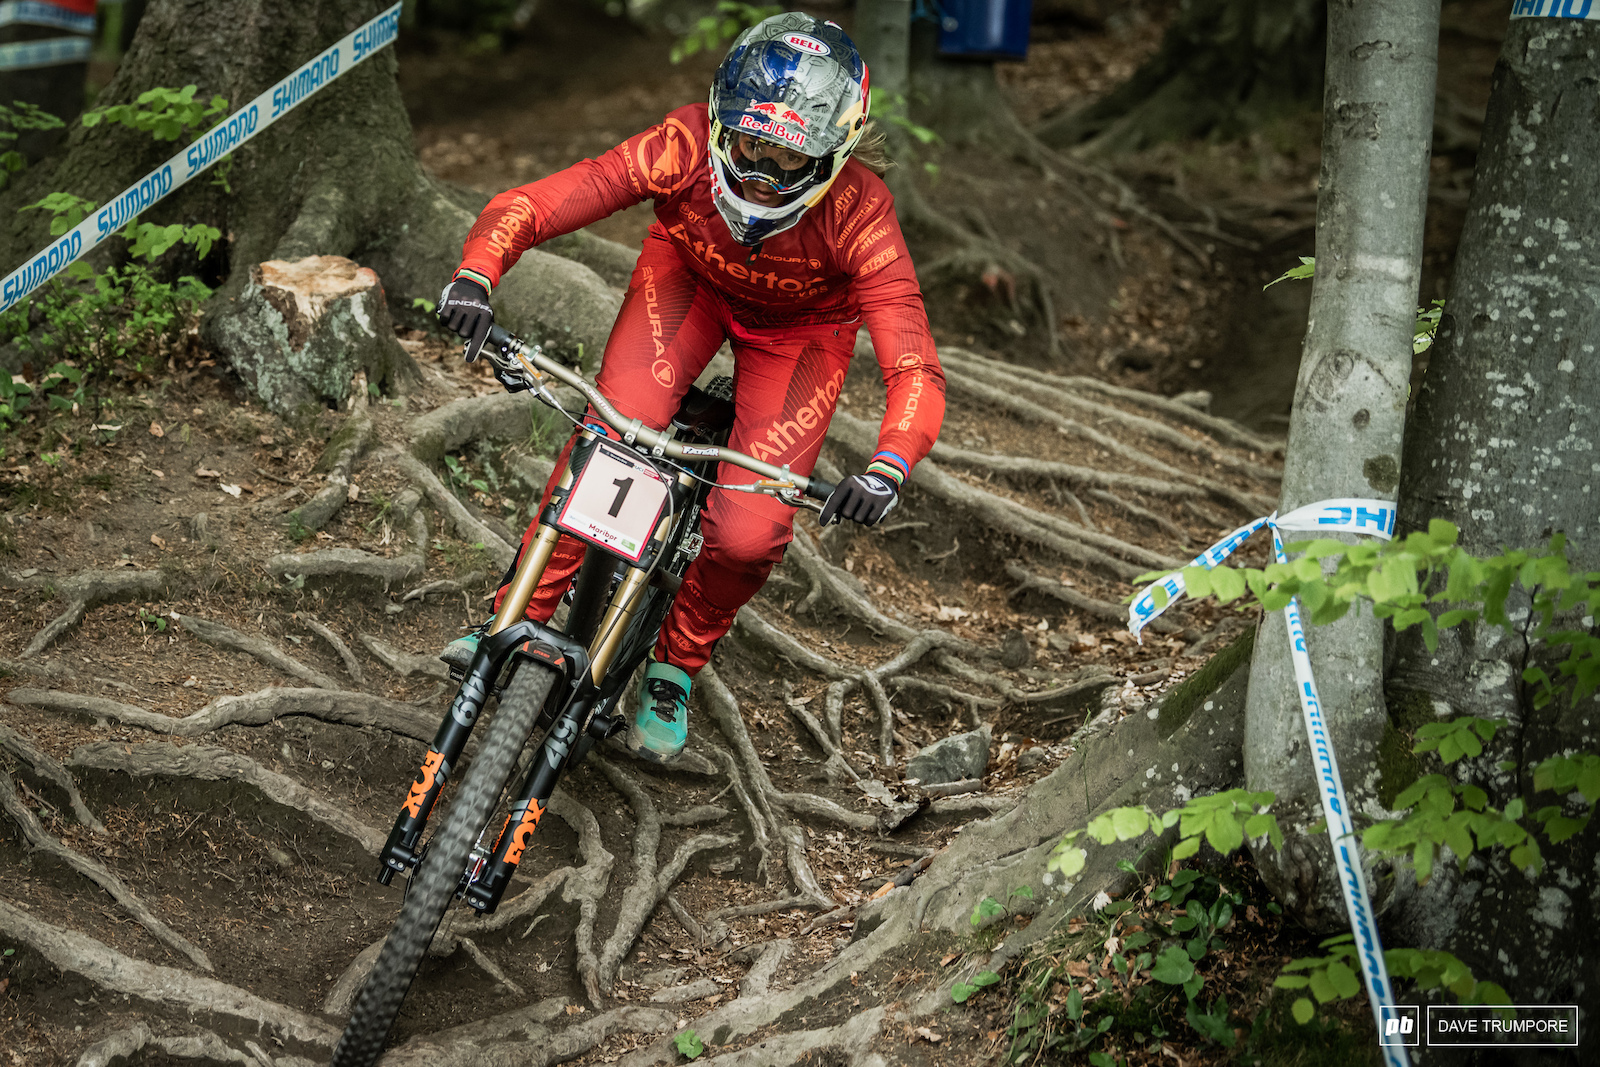 Rachel Atherton making quick work of some nasty looking roots. They stayed dry today but that may not be the case for qualifying or Sunday s final.